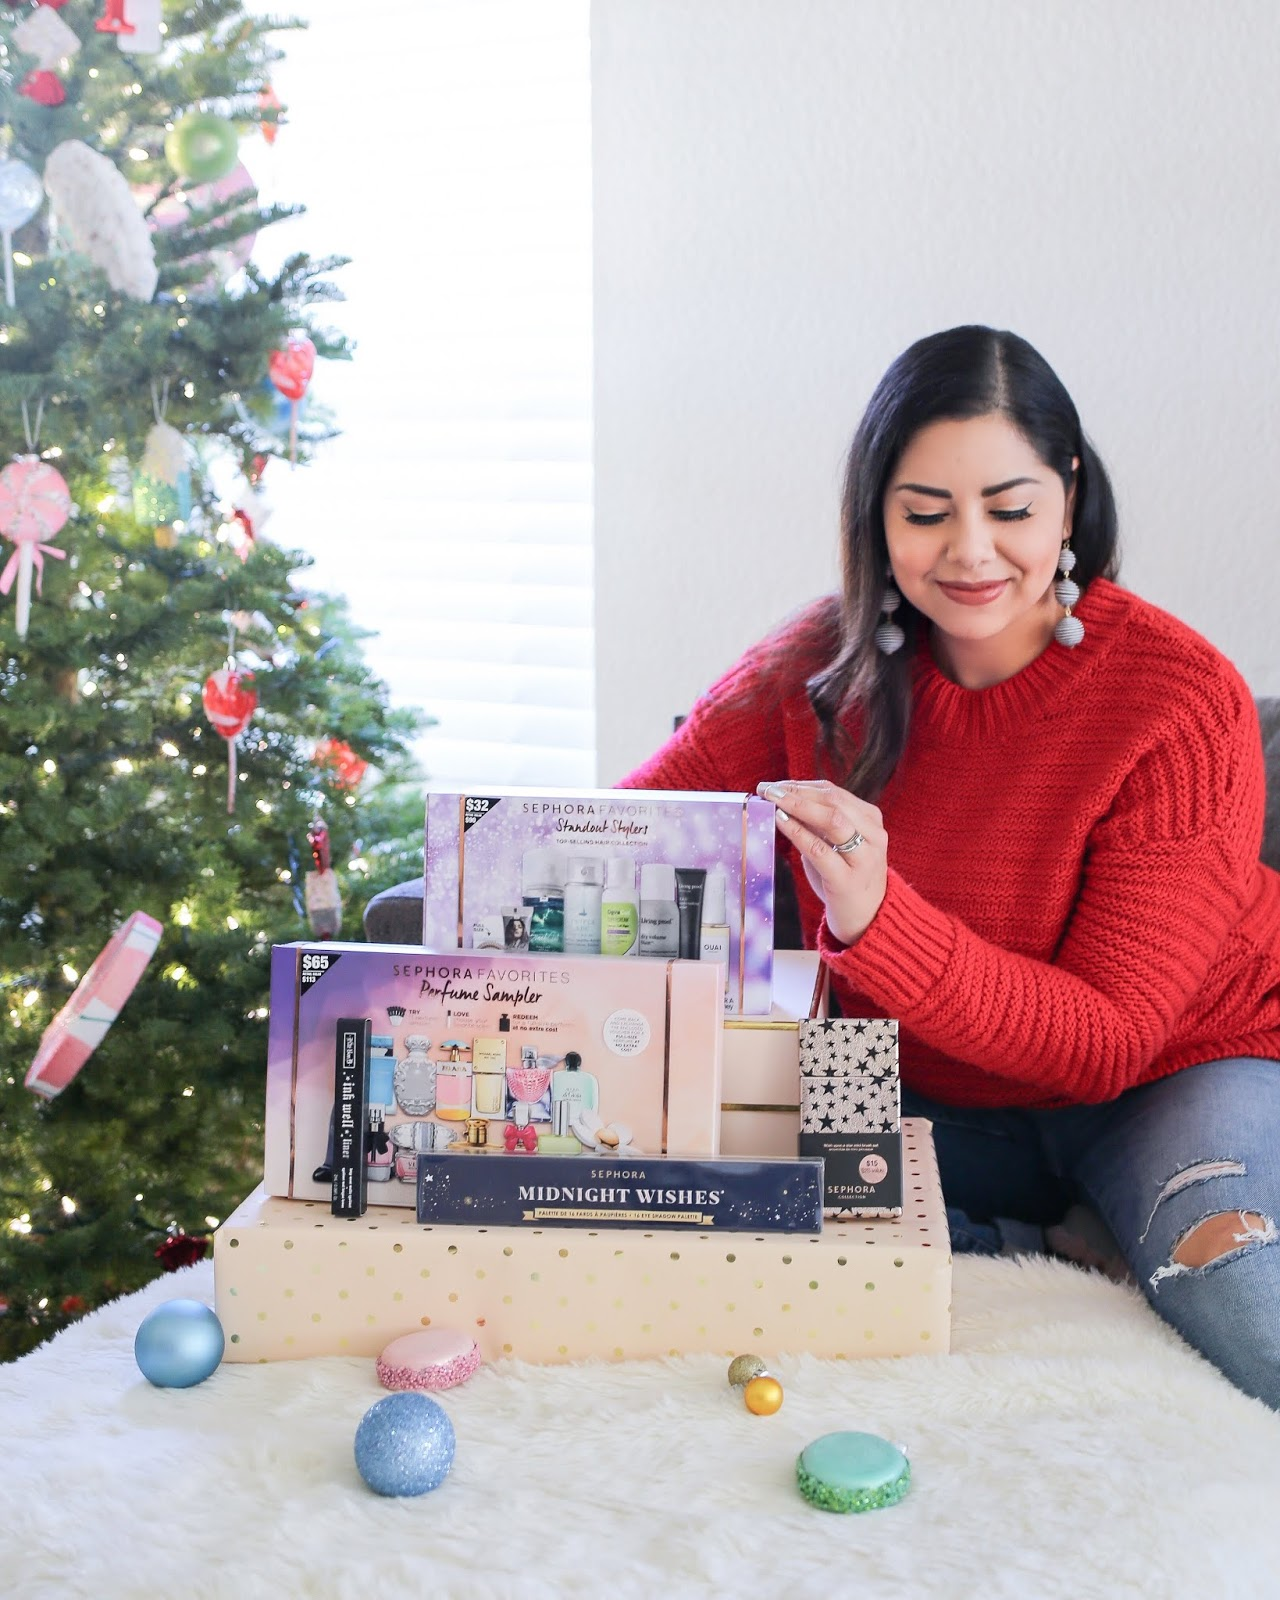 Sephora inside JCPenney Gift Ideas, San Diego Beauty Blogger